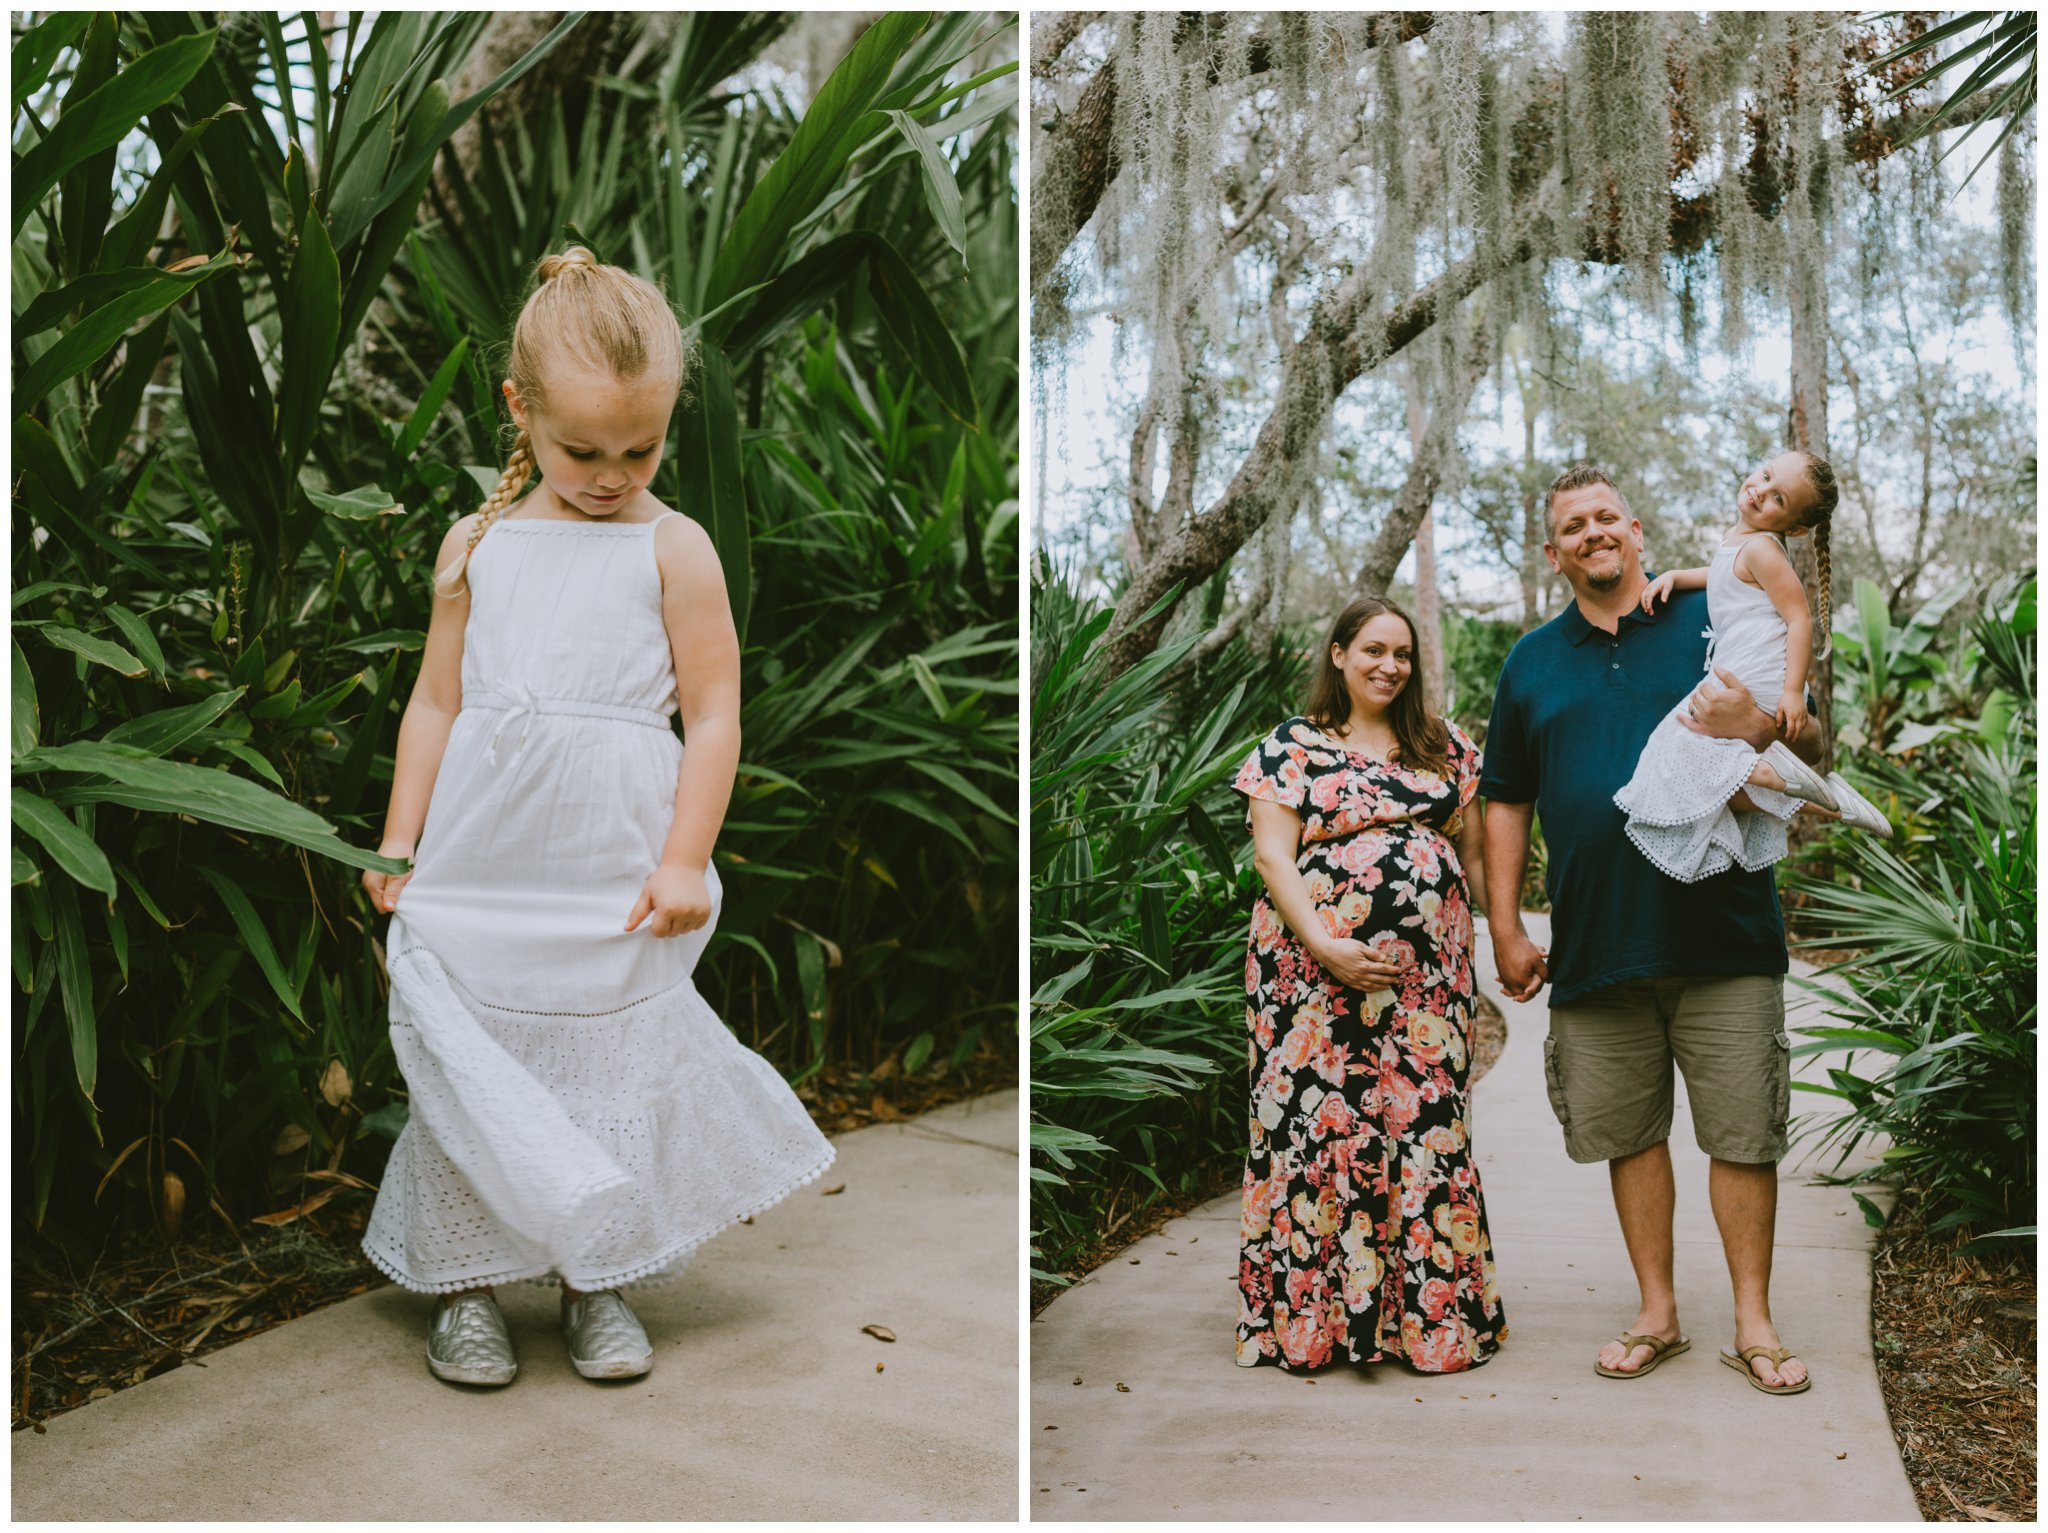 Kimberly Smith Photography| Port St Lucie Botanical Gardens| Maternity Photos| Jupiter Florida Photographer | Stuart Fl photographer_0204.jpg